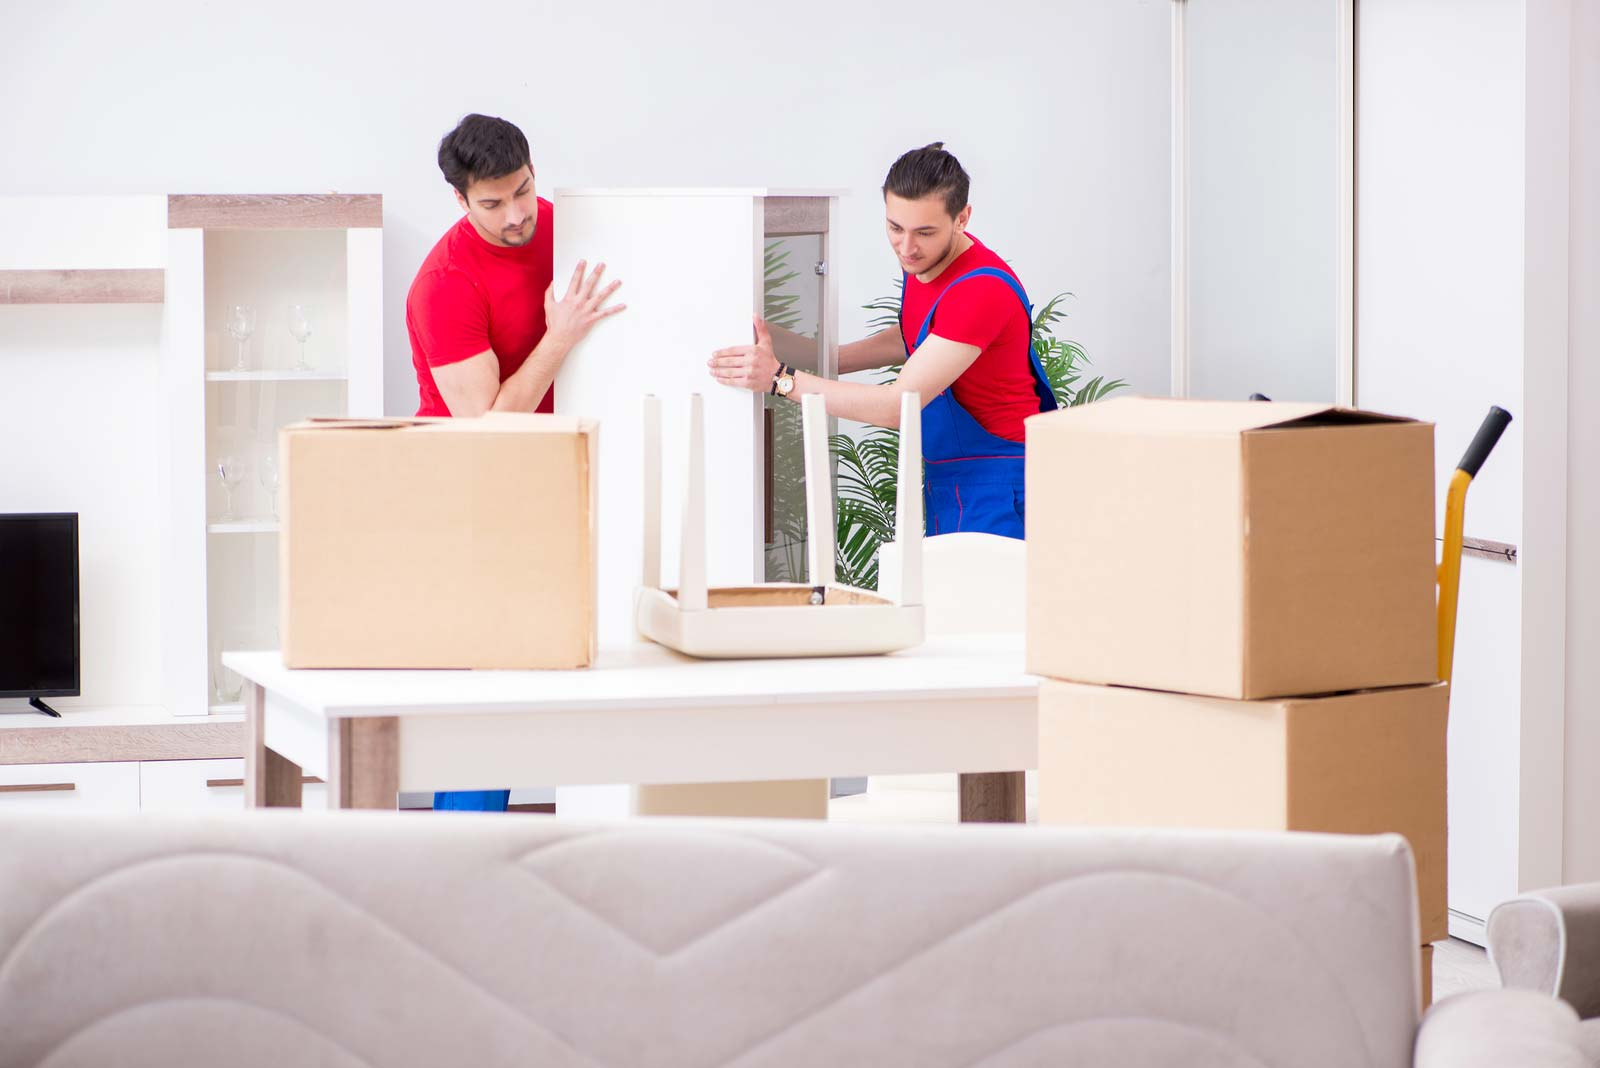 Movers remove boxes to prepare a table for storage.